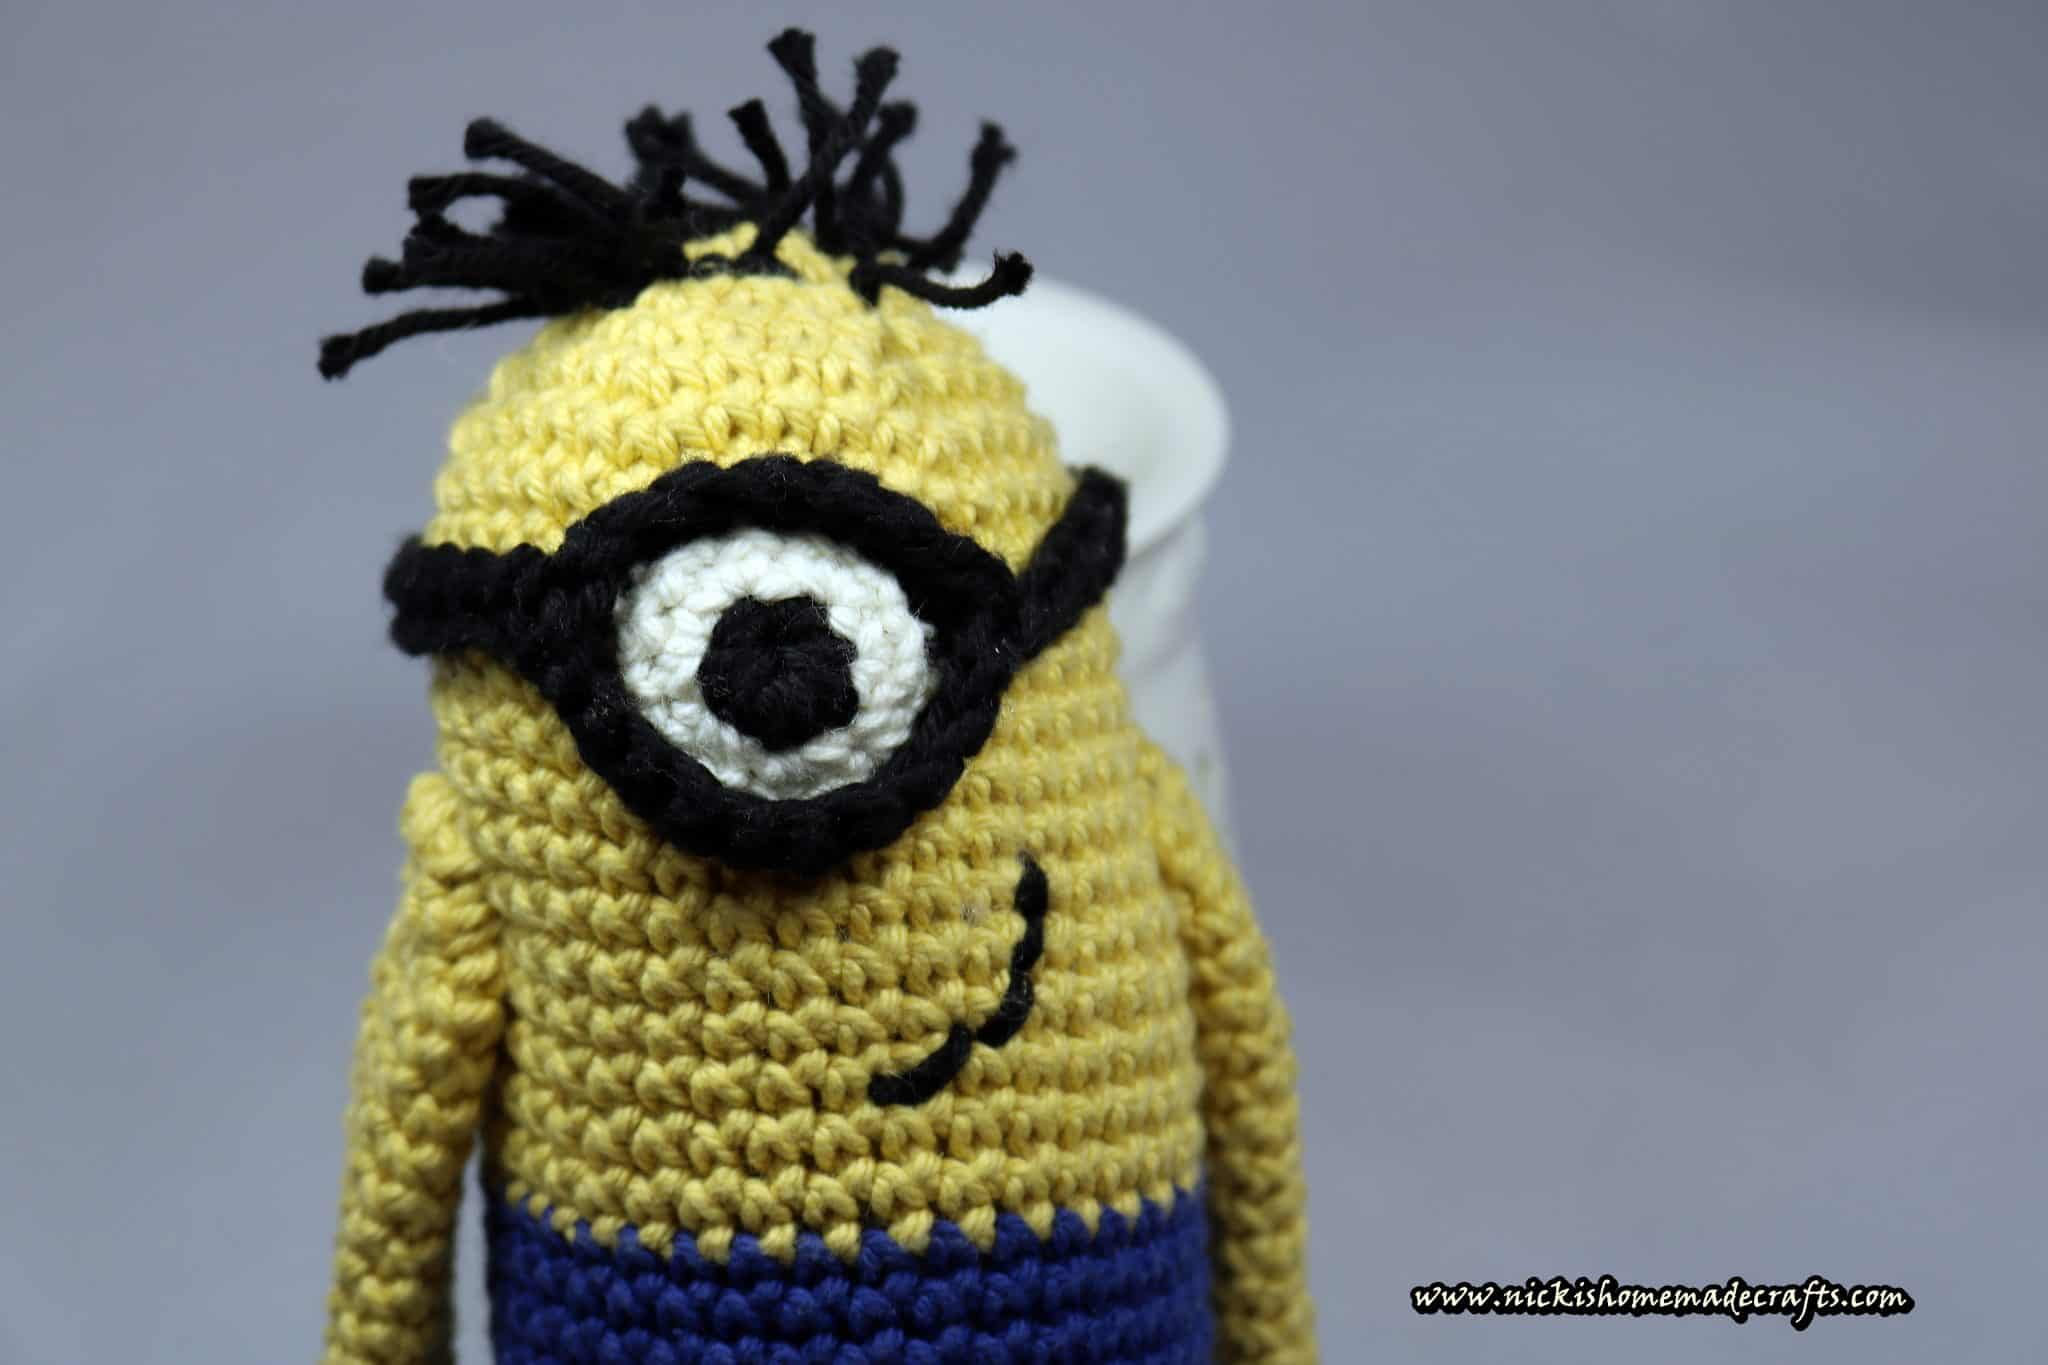 Baby archives nickis homemade crafts free minion amigurumi crochet pattern bankloansurffo Images